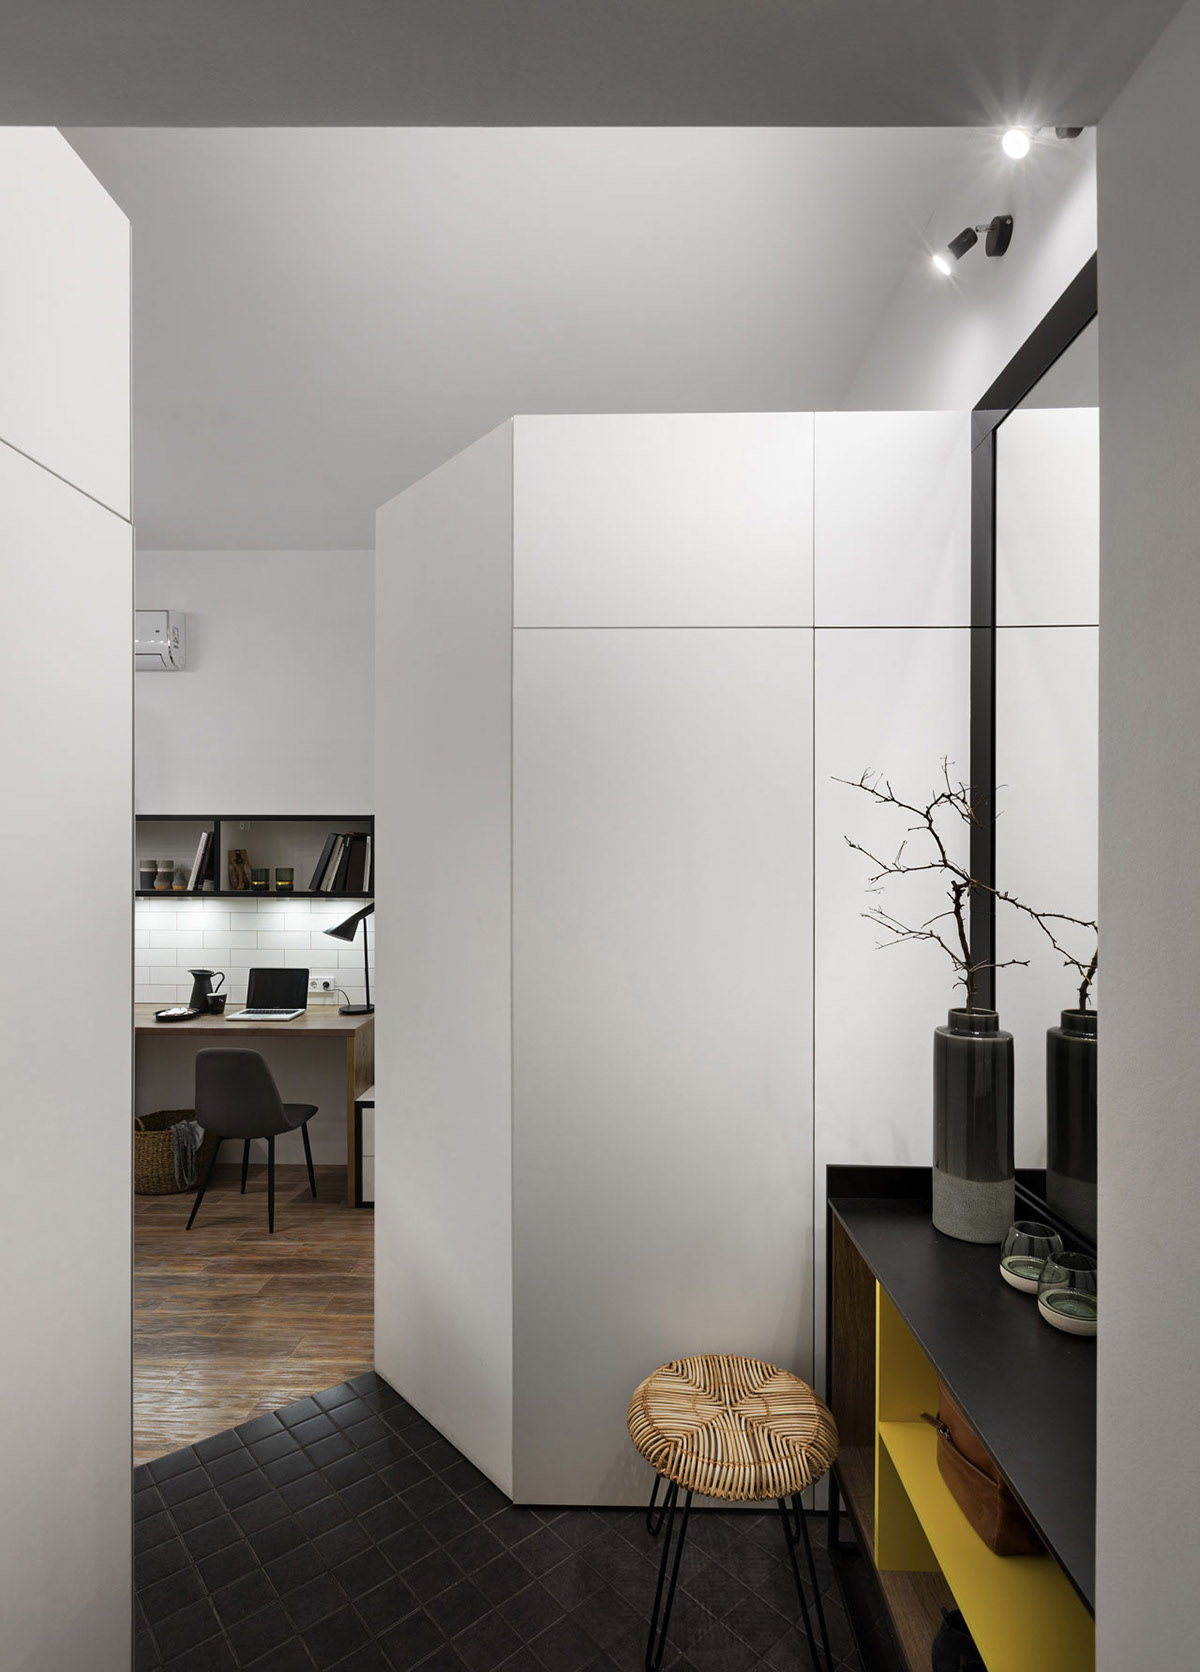 Designing A Living Space Under 18 Square Metres: Challenge Accepted images 11